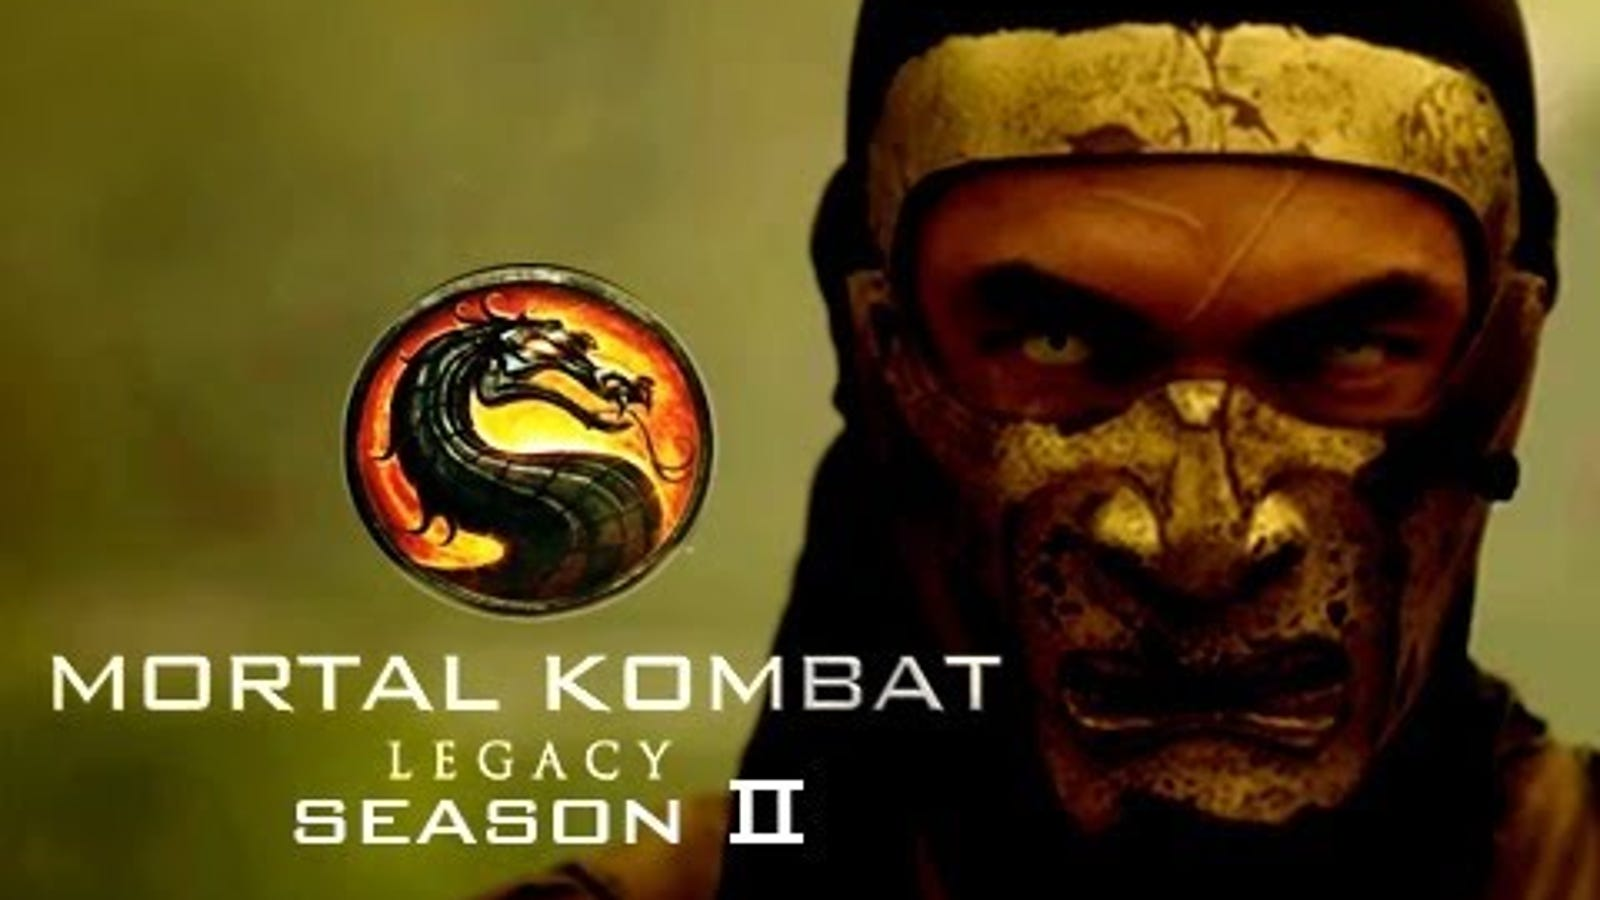 Season 2 Trailer For Mortal Kombat Legacy Wants You To Get Over Here